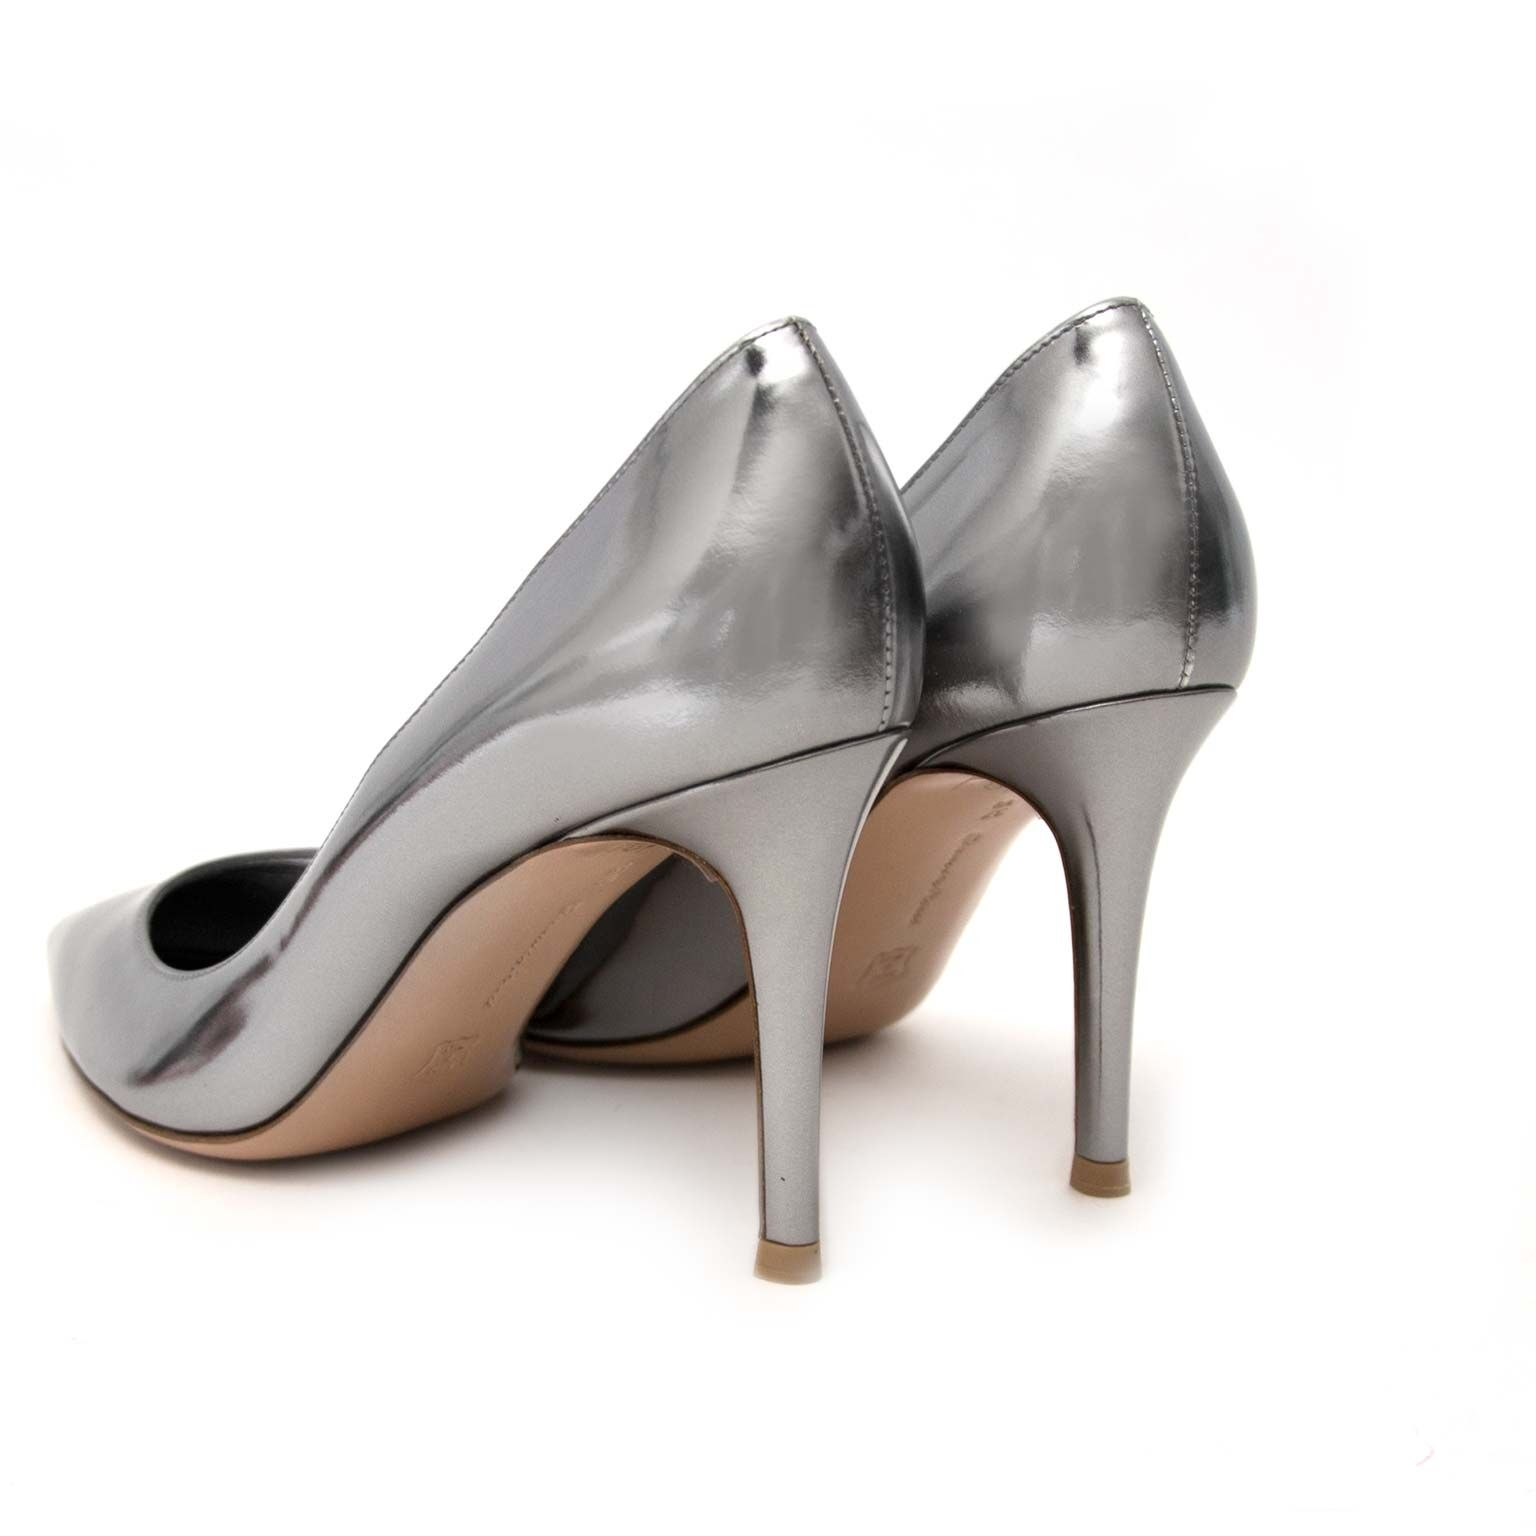 buy secondhand Gianvito Rossi metallic pumps at labellov